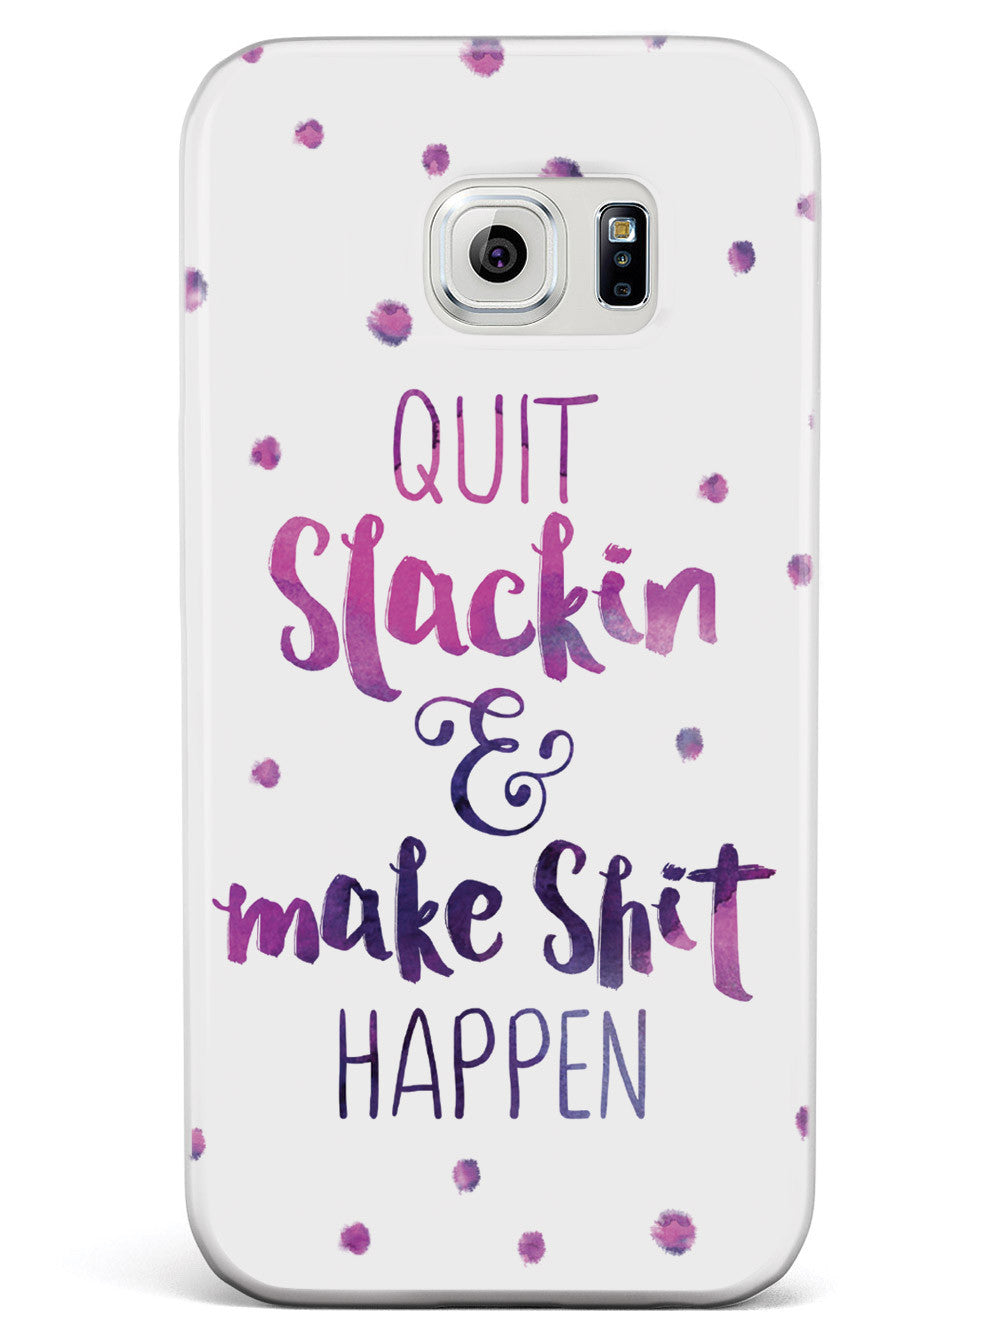 Quit Slackin' and Make Shit Happen Case